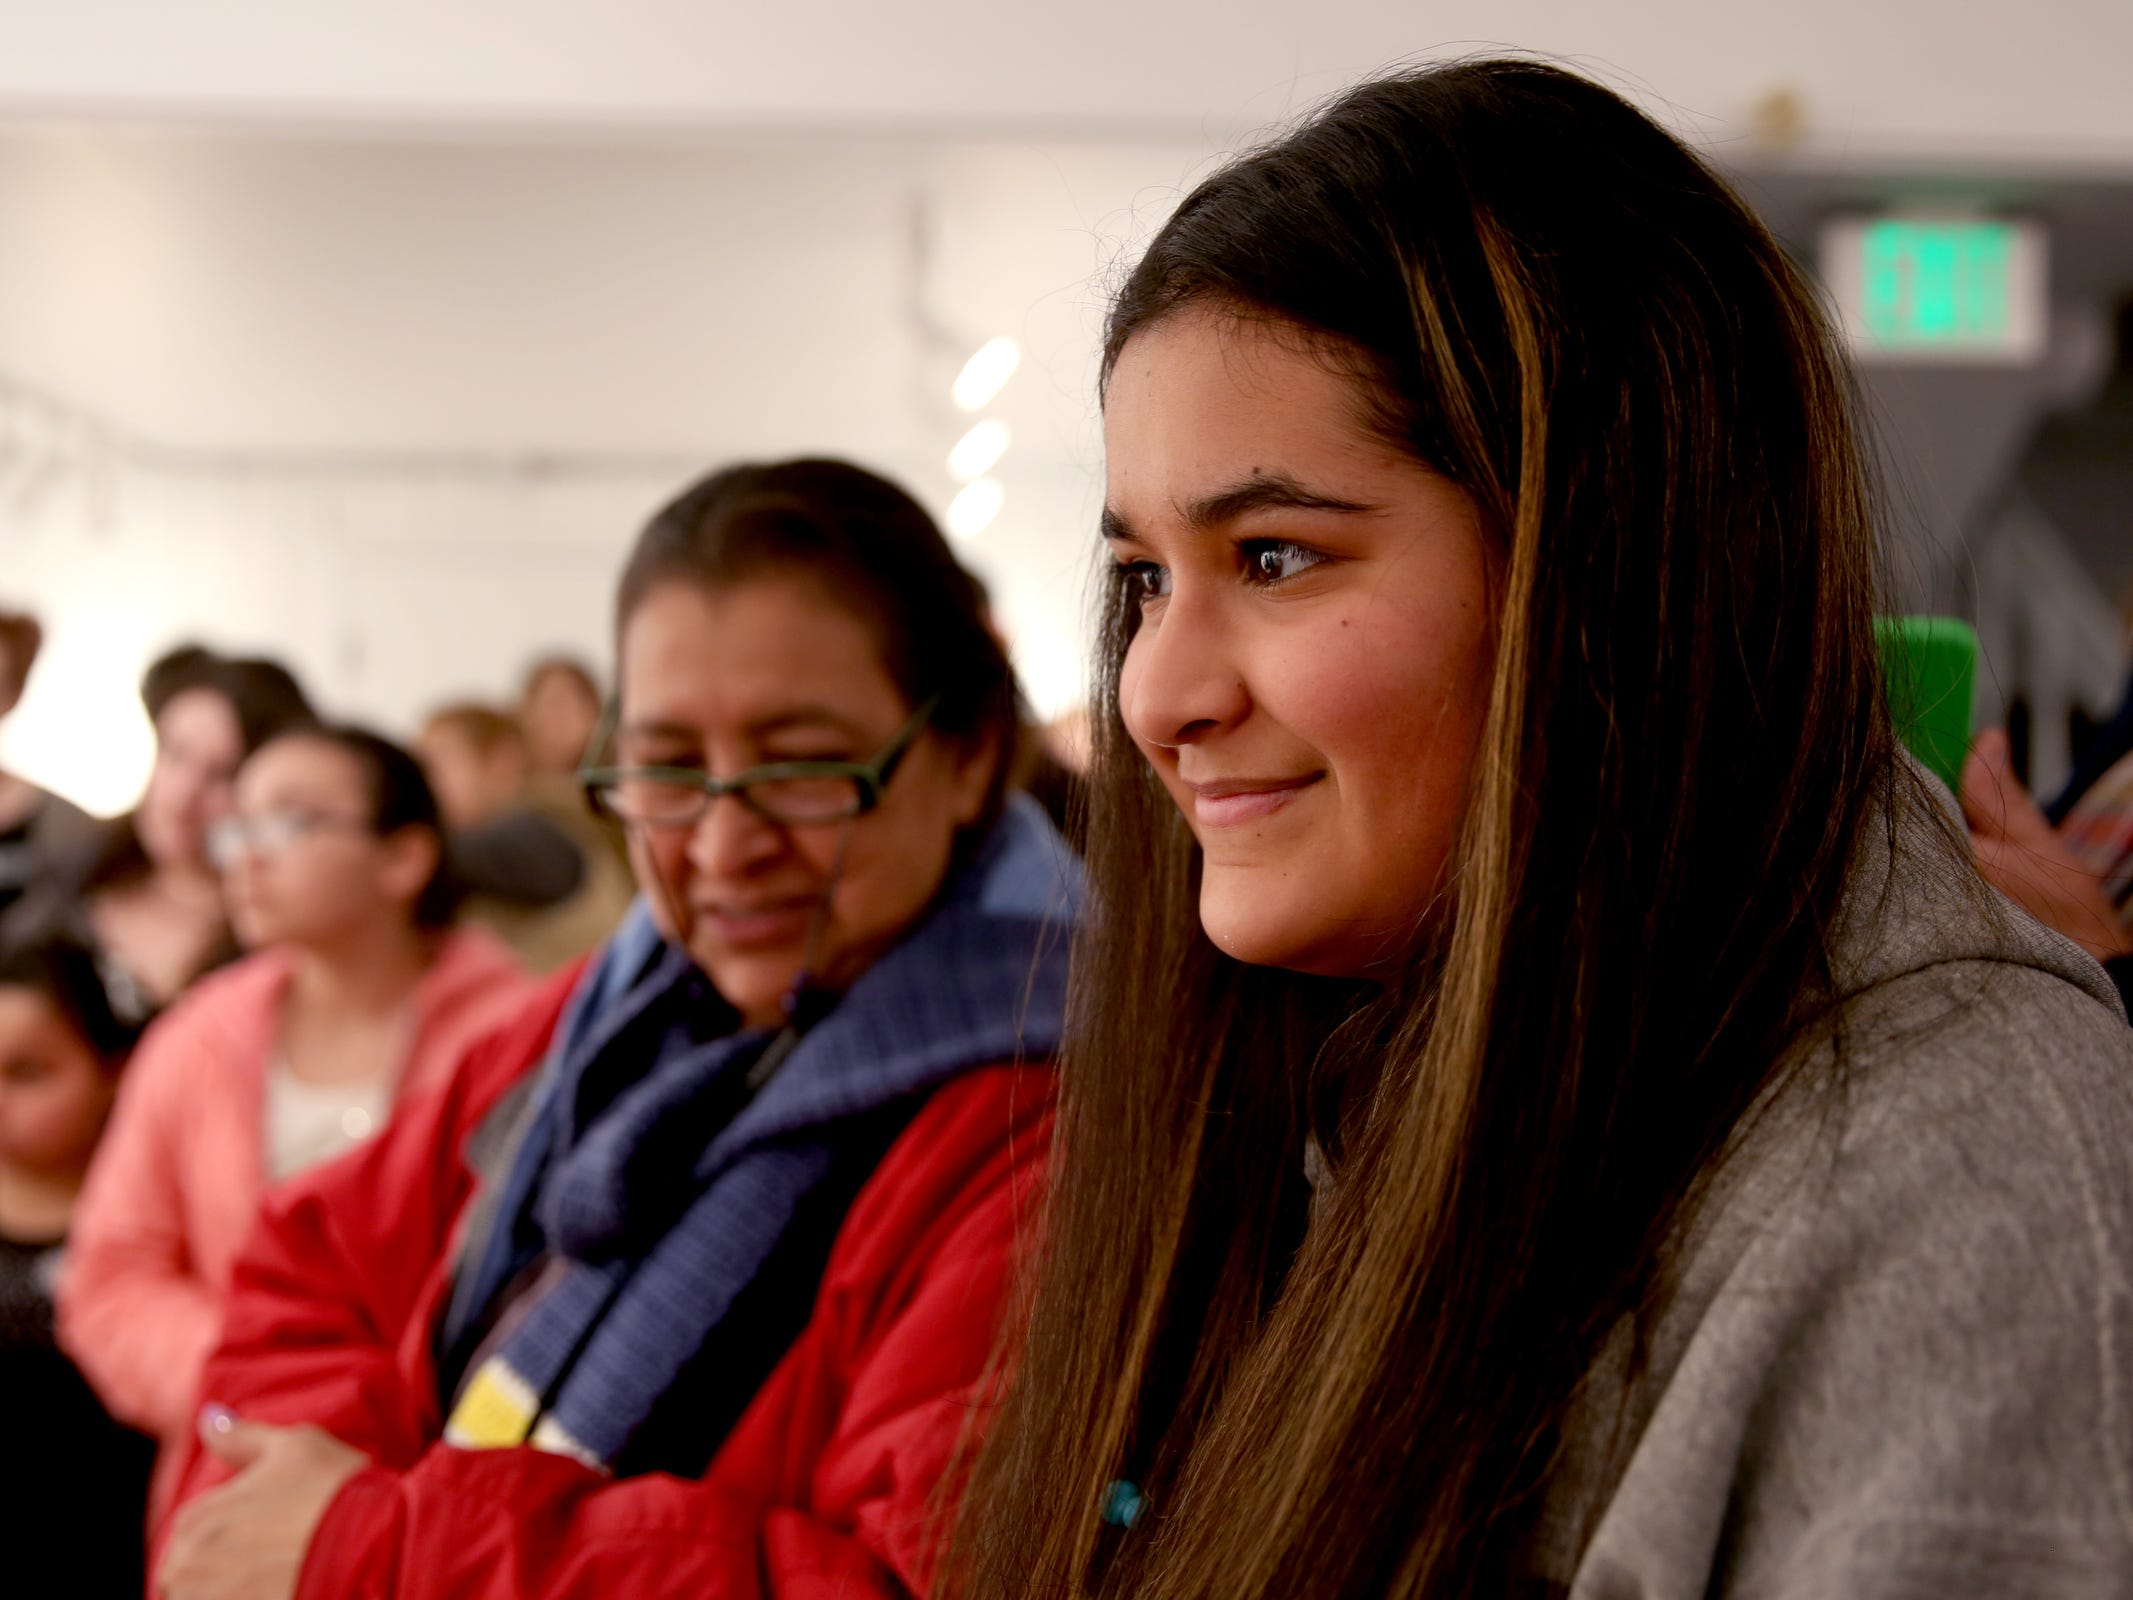 Selena Mendez, a Salem Academy junior, accepts the Poster Award, meaning her artwork will be featured on future promotional materials, during the 10th annual Young Artists' Showcase at the Bush Barn Art Center in Salem on March 9, 2019. The exhibit features artwork by more than 400 students in Marion, Polk and Yamhill counties and runs through April 20.